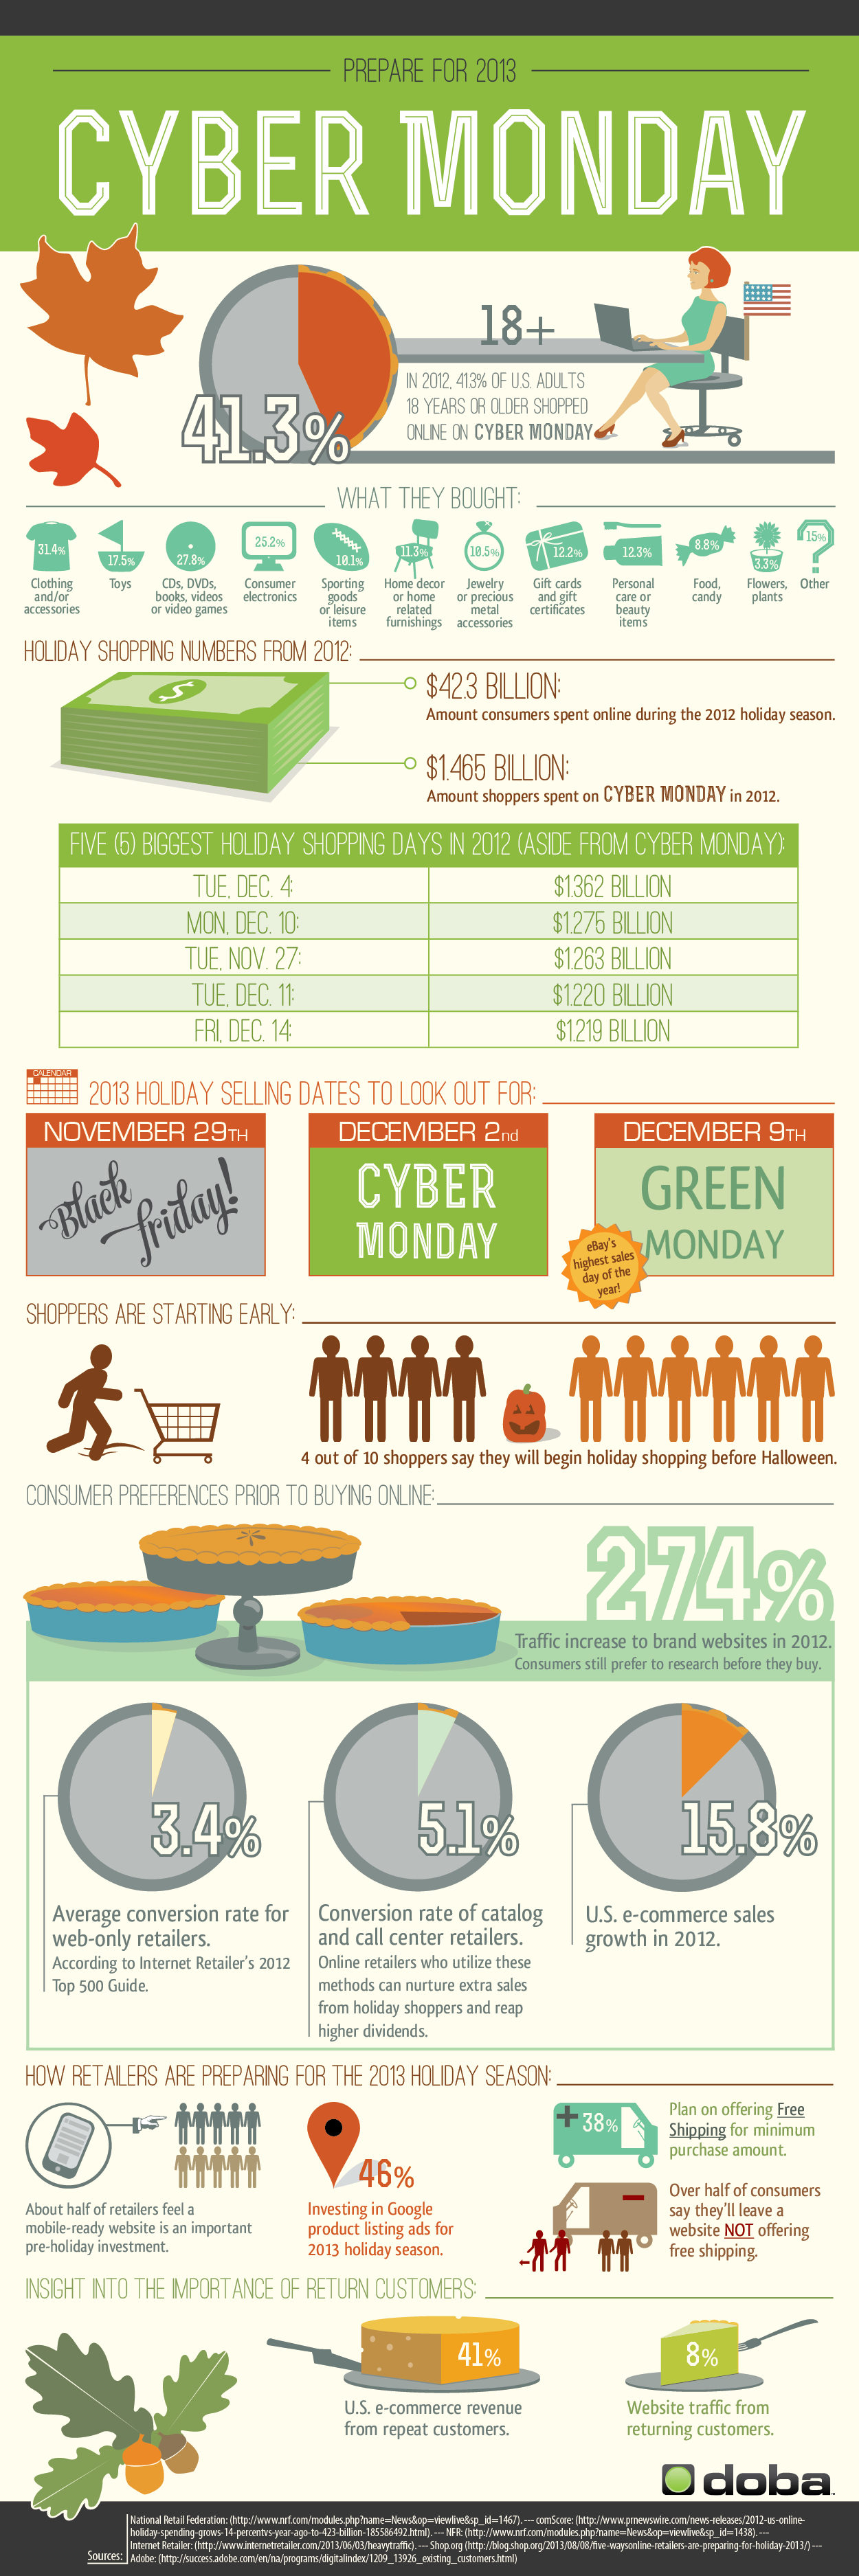 Cyber Monday for Business-Infographic